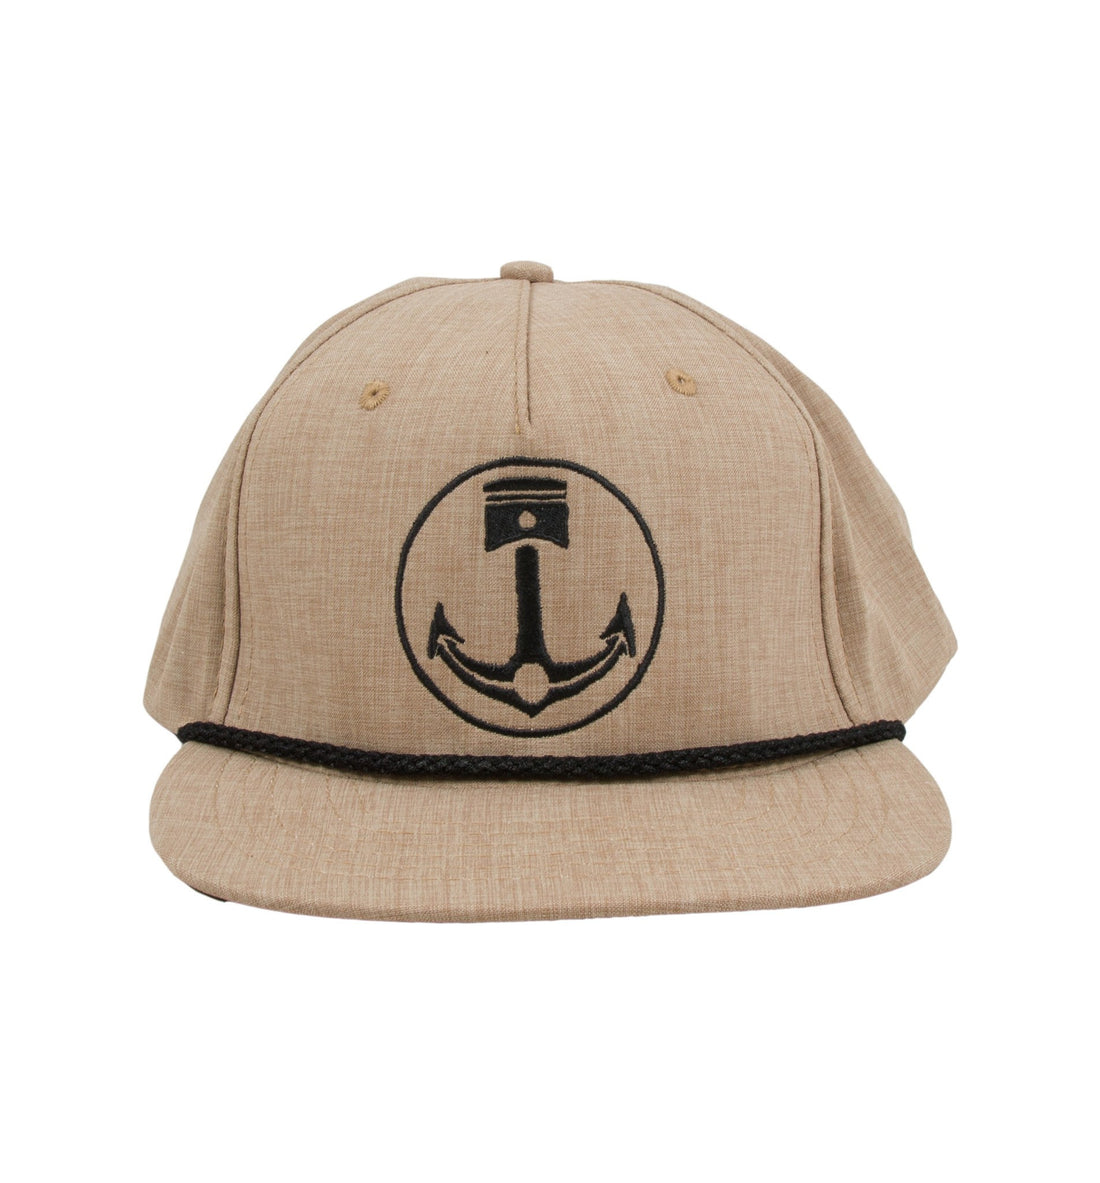 Anchor Piston Hat - Headwear - Iron and Resin